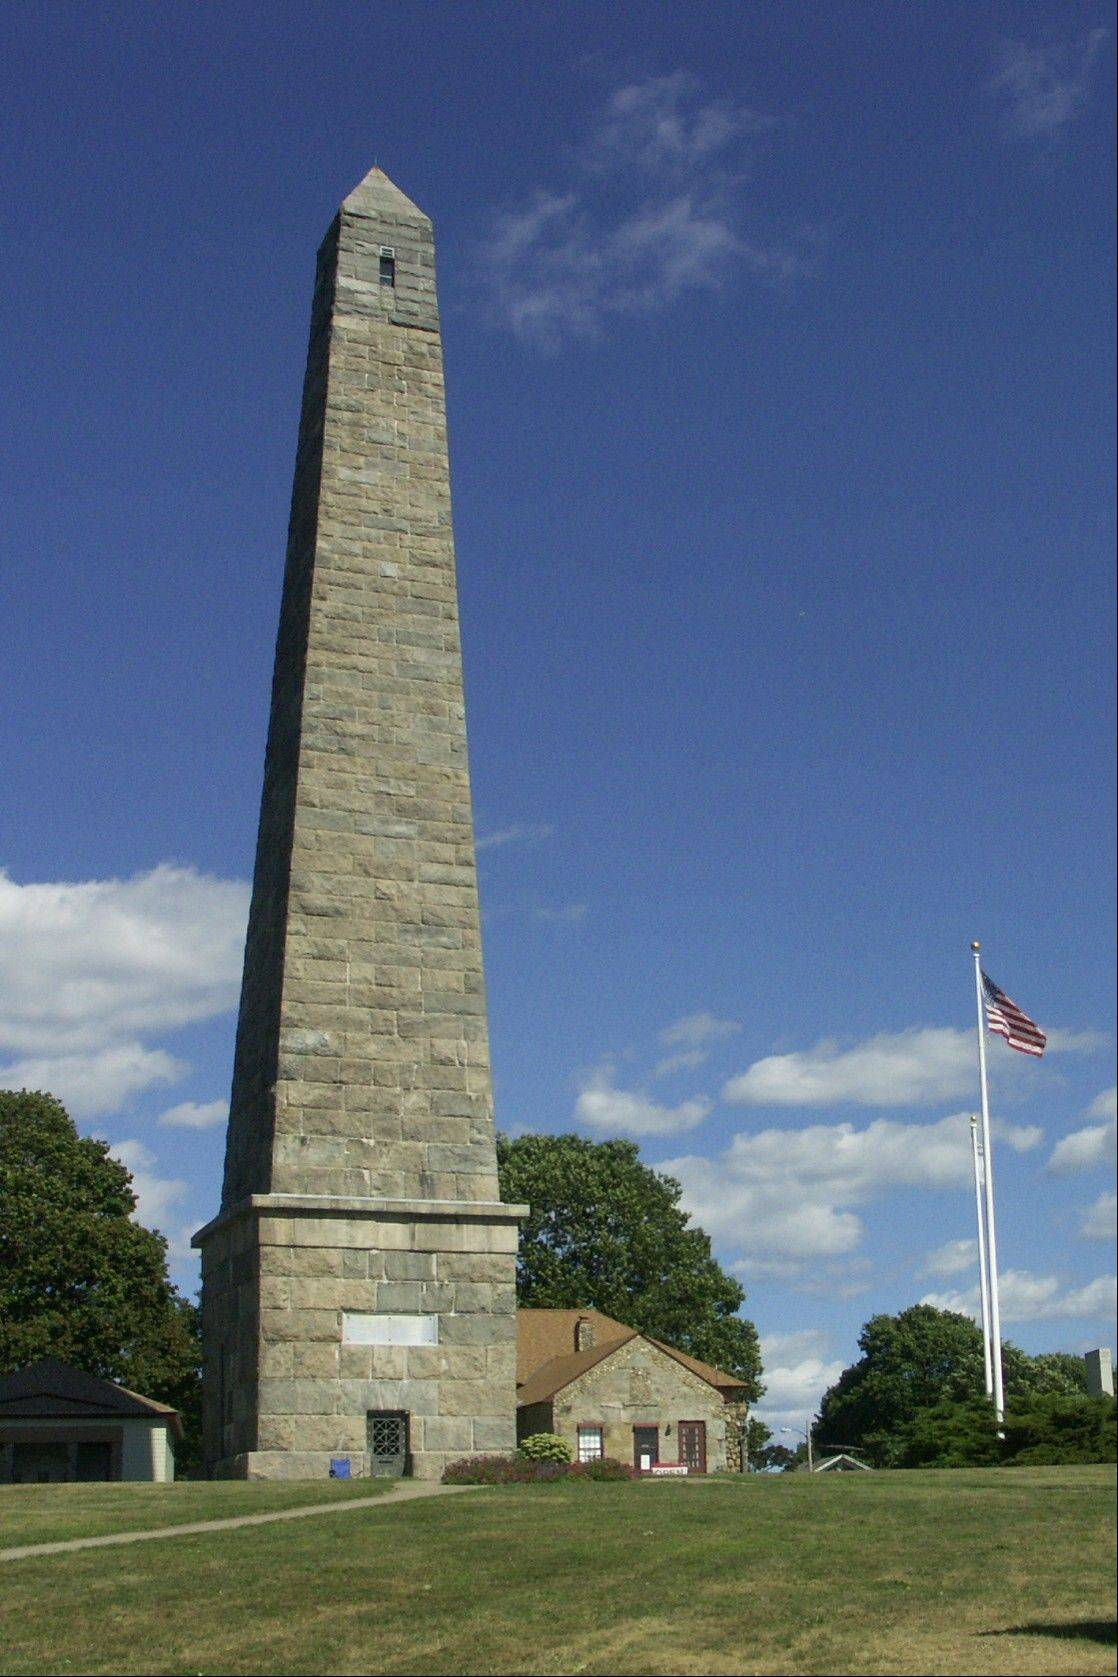 The Groton Monument at Fort Griswold Battlefield State Park in Groton, Conn., was erected around 1830 to commemorate a 1781 Revolutionary War battle in which British forces, commanded by Benedict Arnold, captured the fort and killed 88 of the 165 defenders.